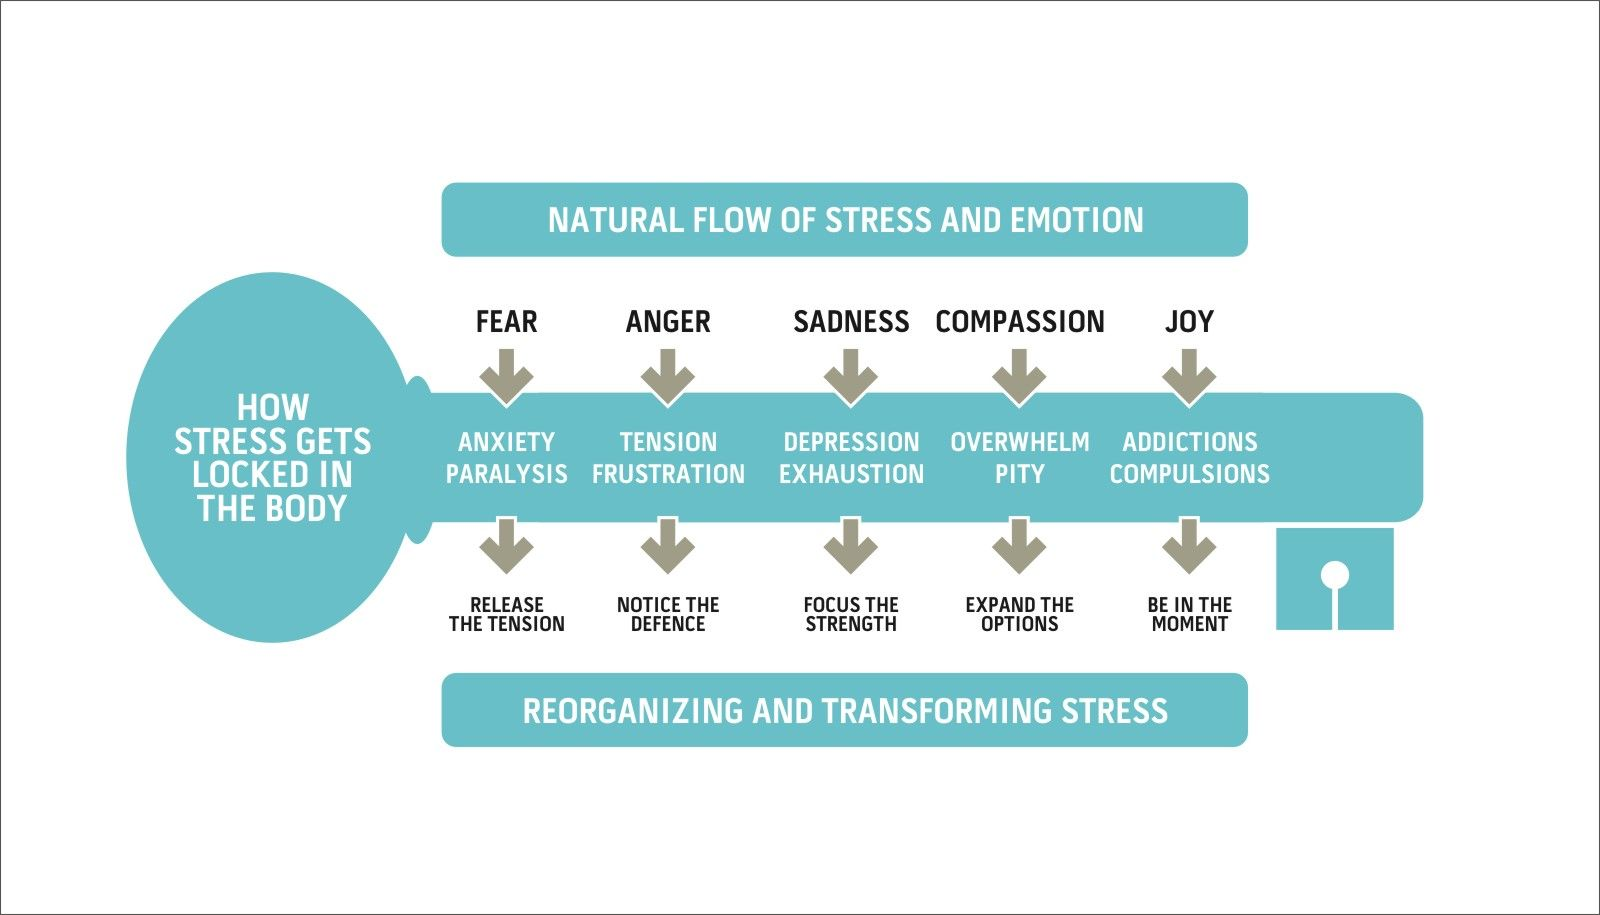 Natural Flow Of Stress And Emotion